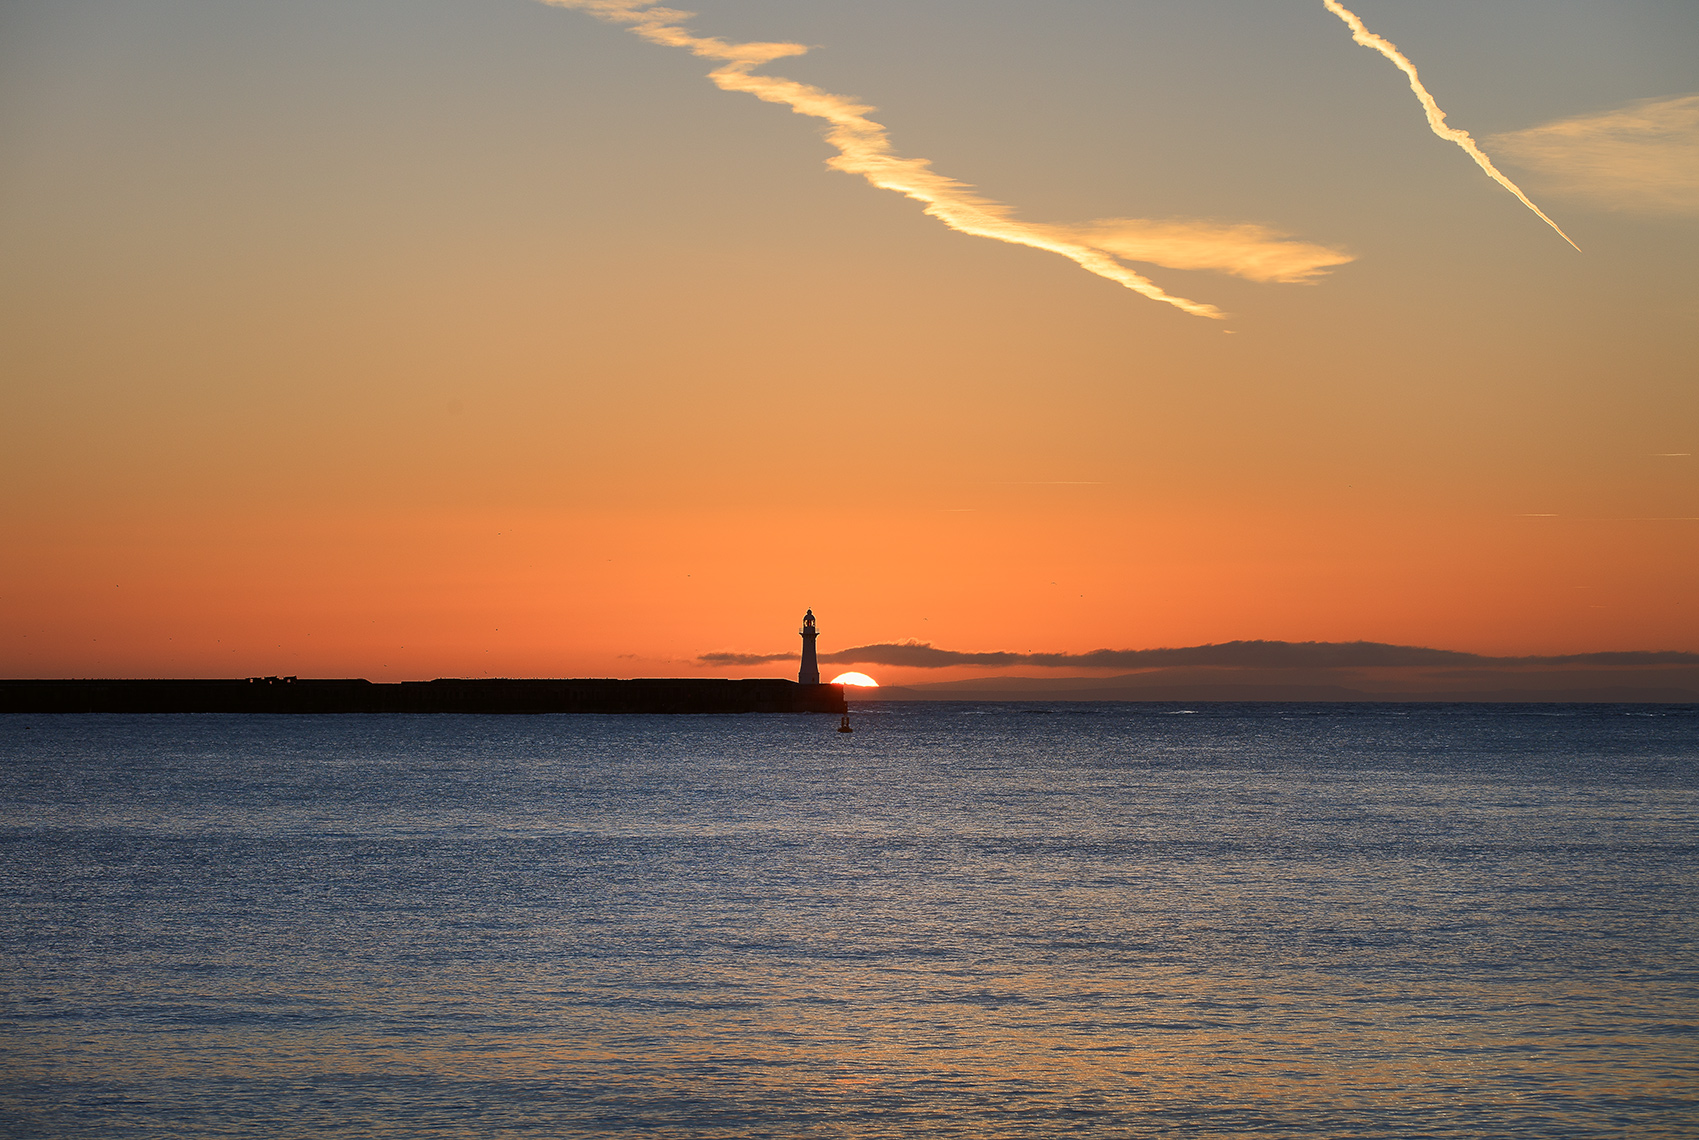 Sun rising over the sea with lighthouse in the distance of Dover, Kent UK